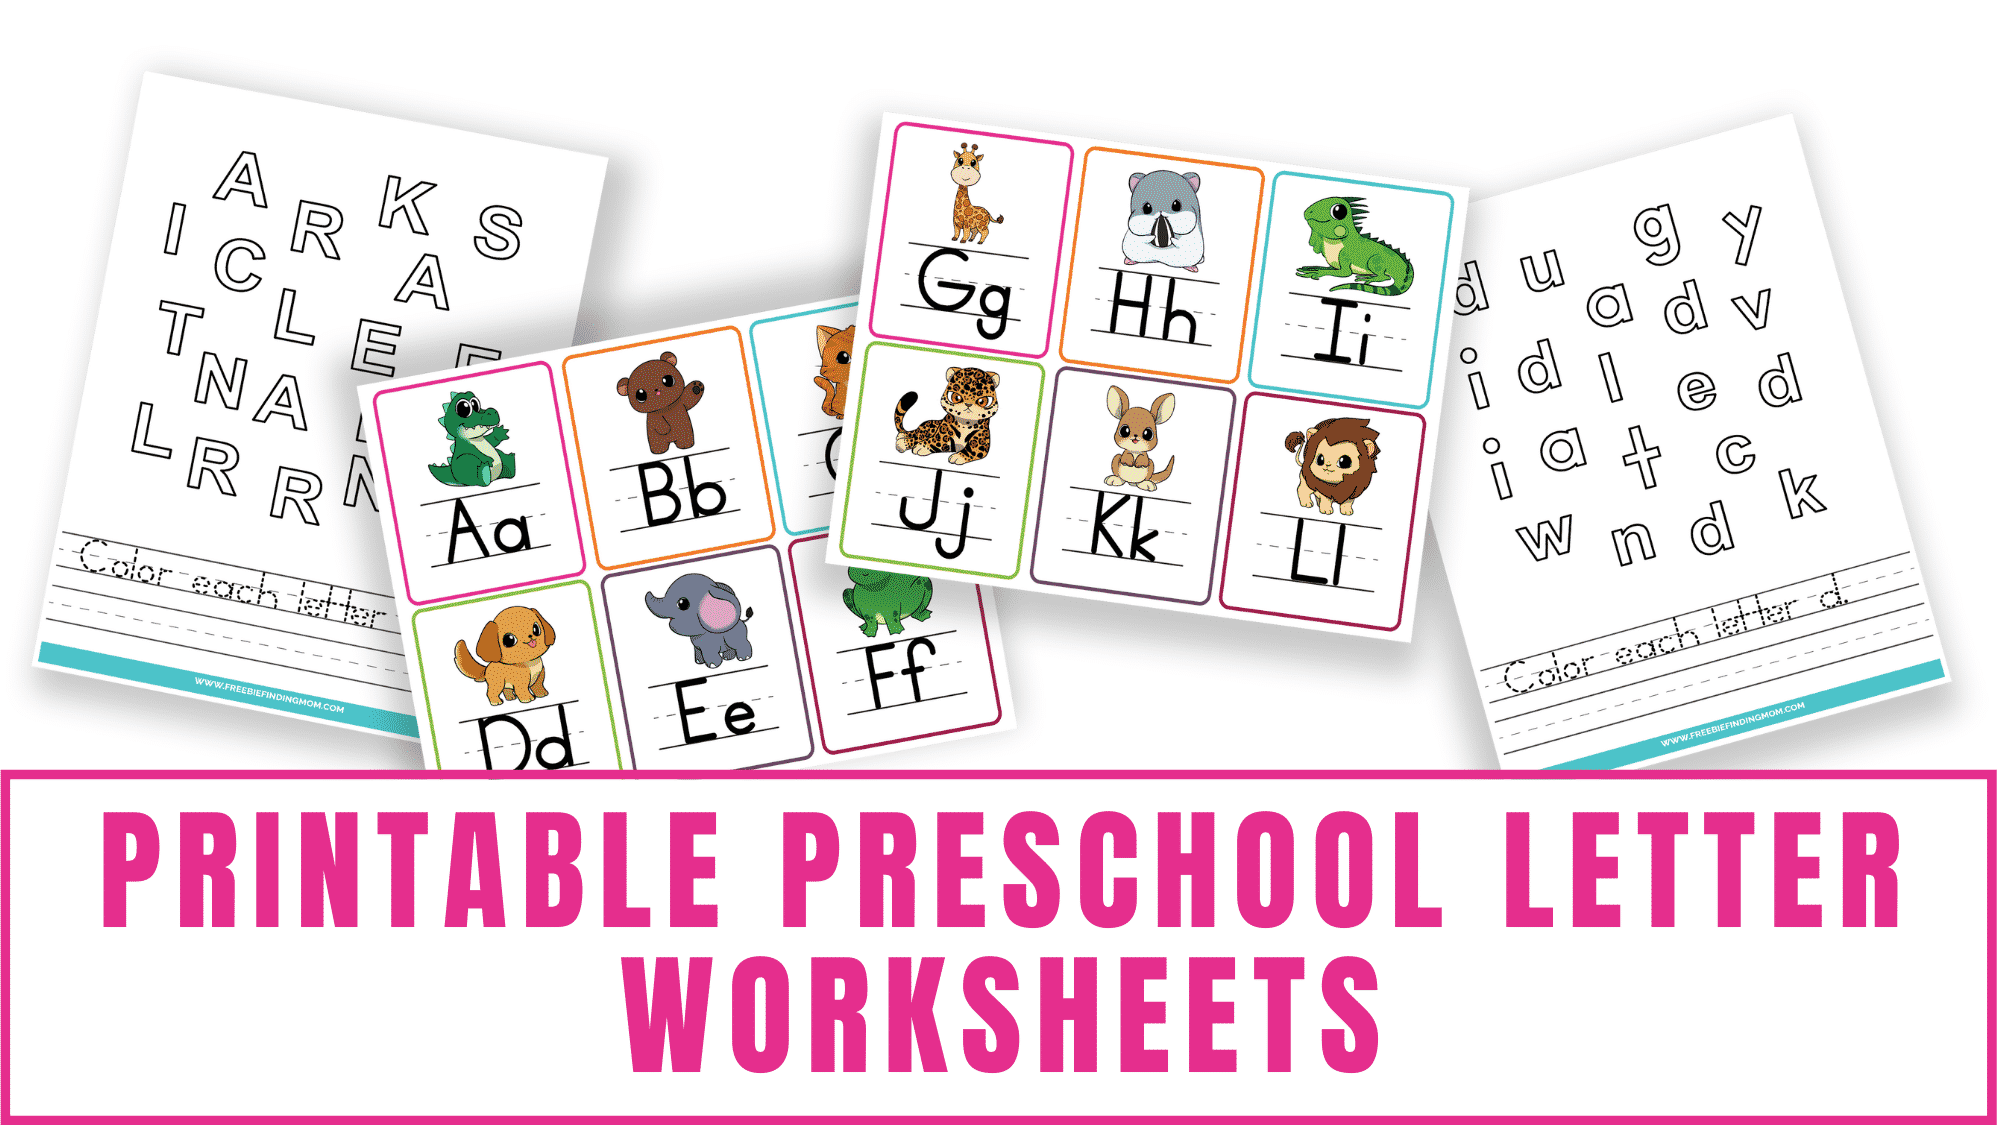 Download these printable preschool letter worksheets to help your kid work on letter recognition of uppercase and lowercase letters. Turn the printable letter flashcards into a fun letter game.